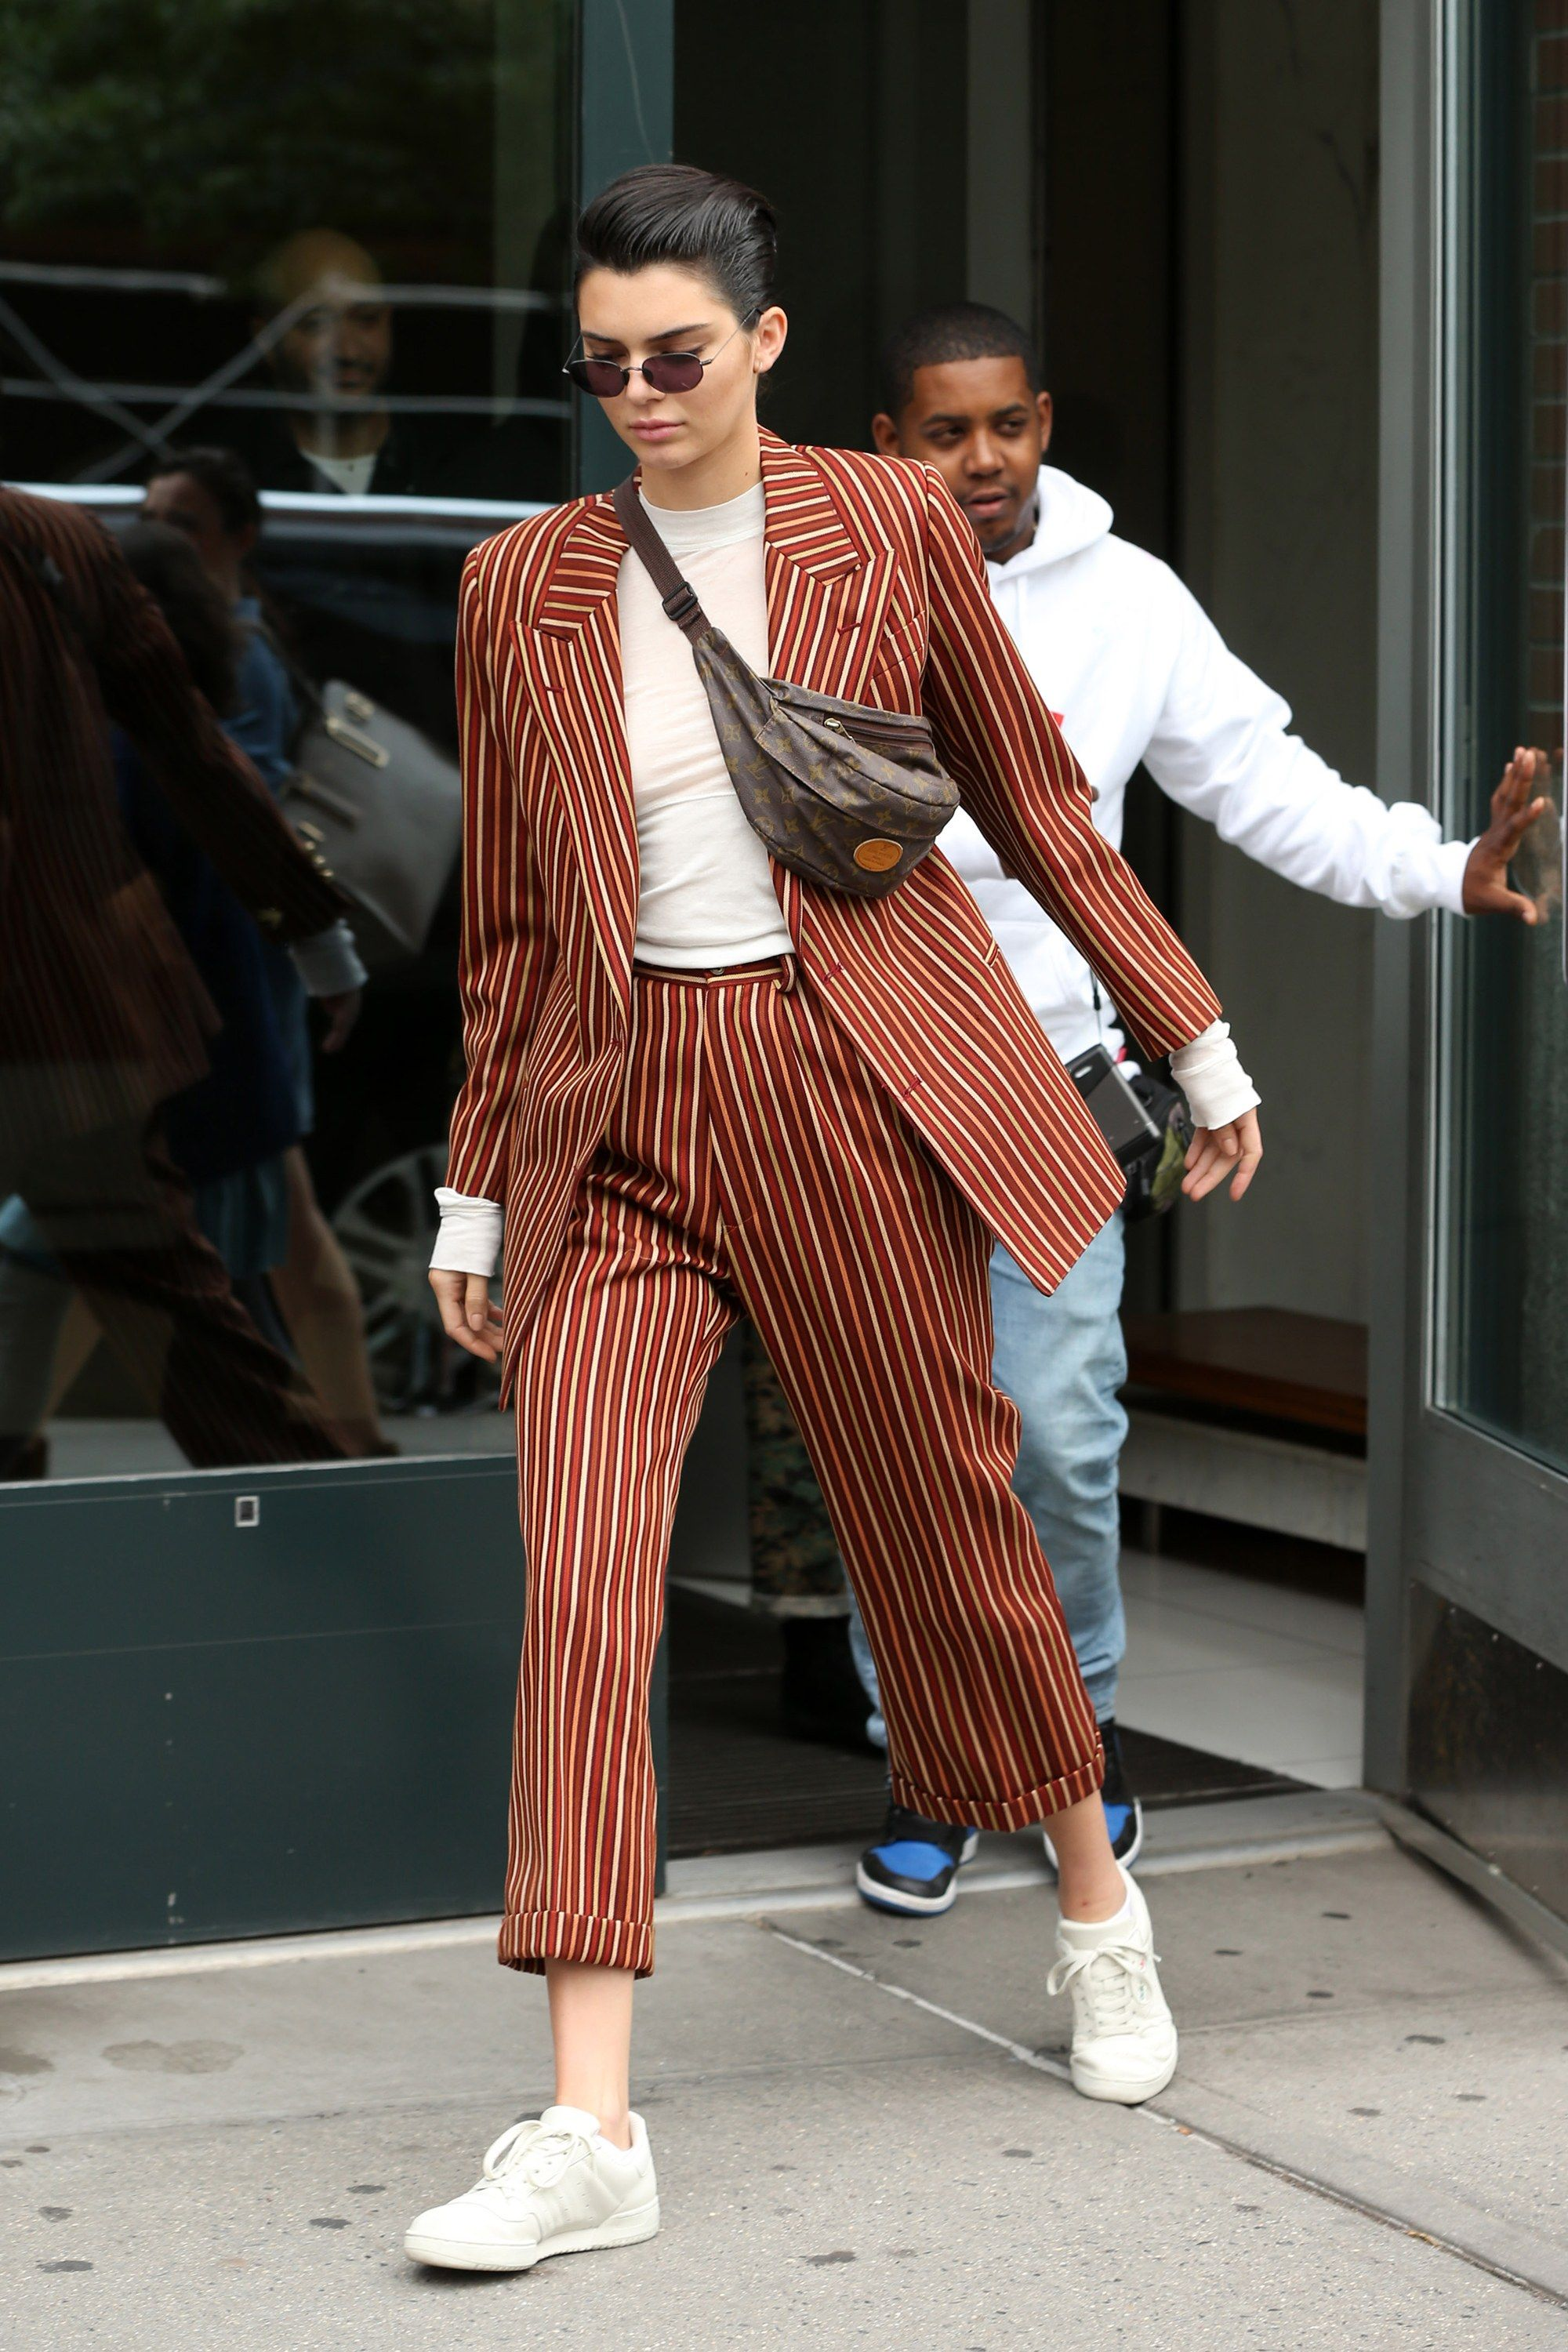 658bbf3560f9 Kendall Jenner suited up in a pinstripe blazer and trousers that gave chic  new meaning to the idea of borrowing from the boys.